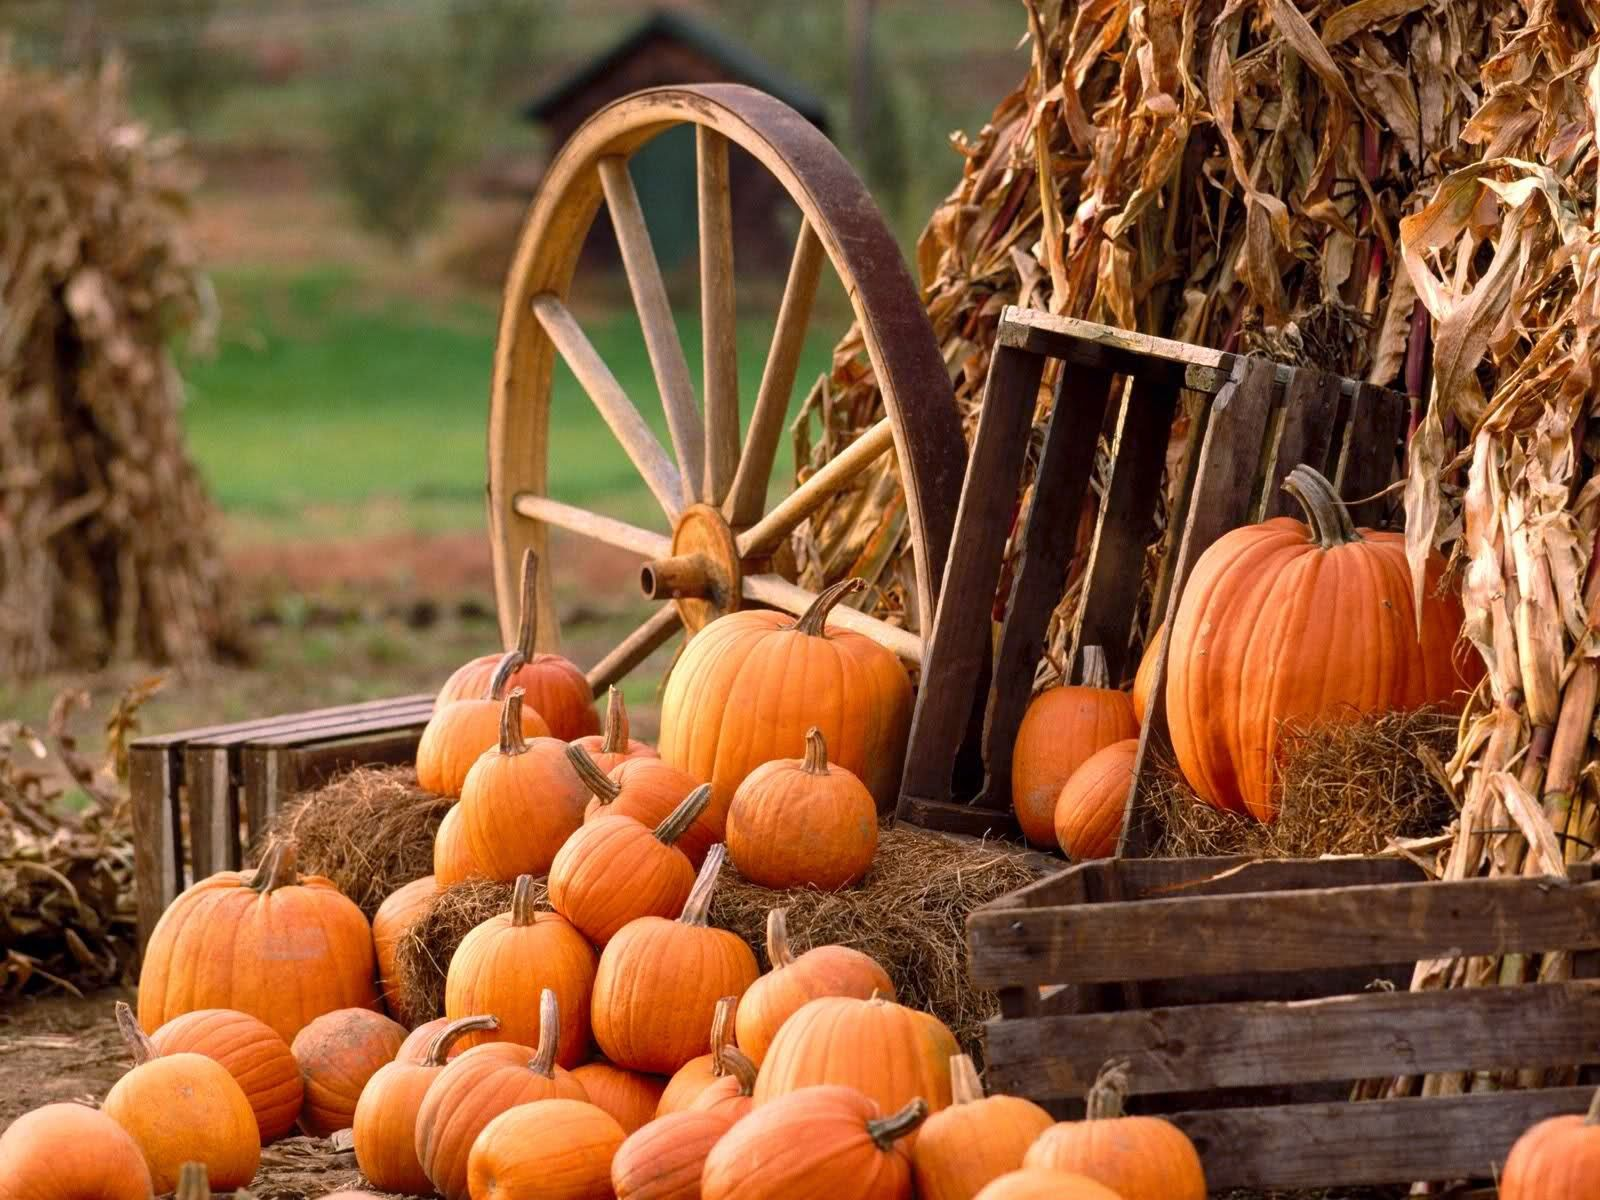 Autumn Wallpaper Pumpkin Country Theme Fall Pumpkins Fall Harvest Fall Wallpaper